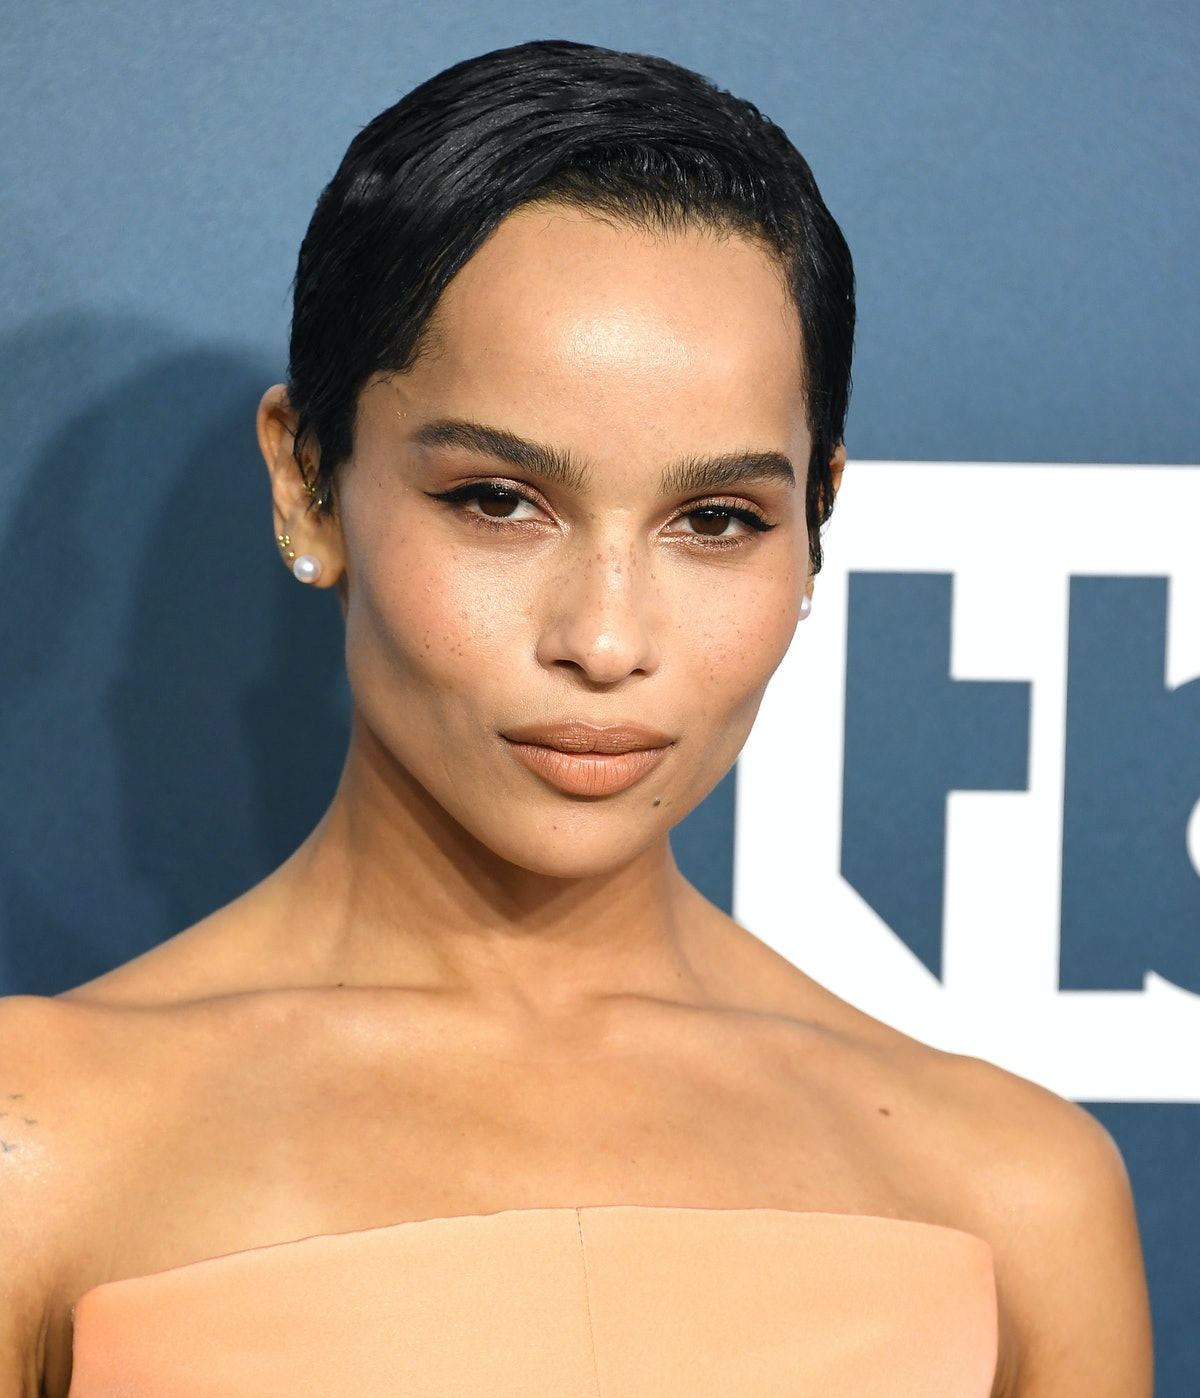 Zoë Kravitz has sparked dating rumors with Channing Tatum after new pics of the duo went viral.